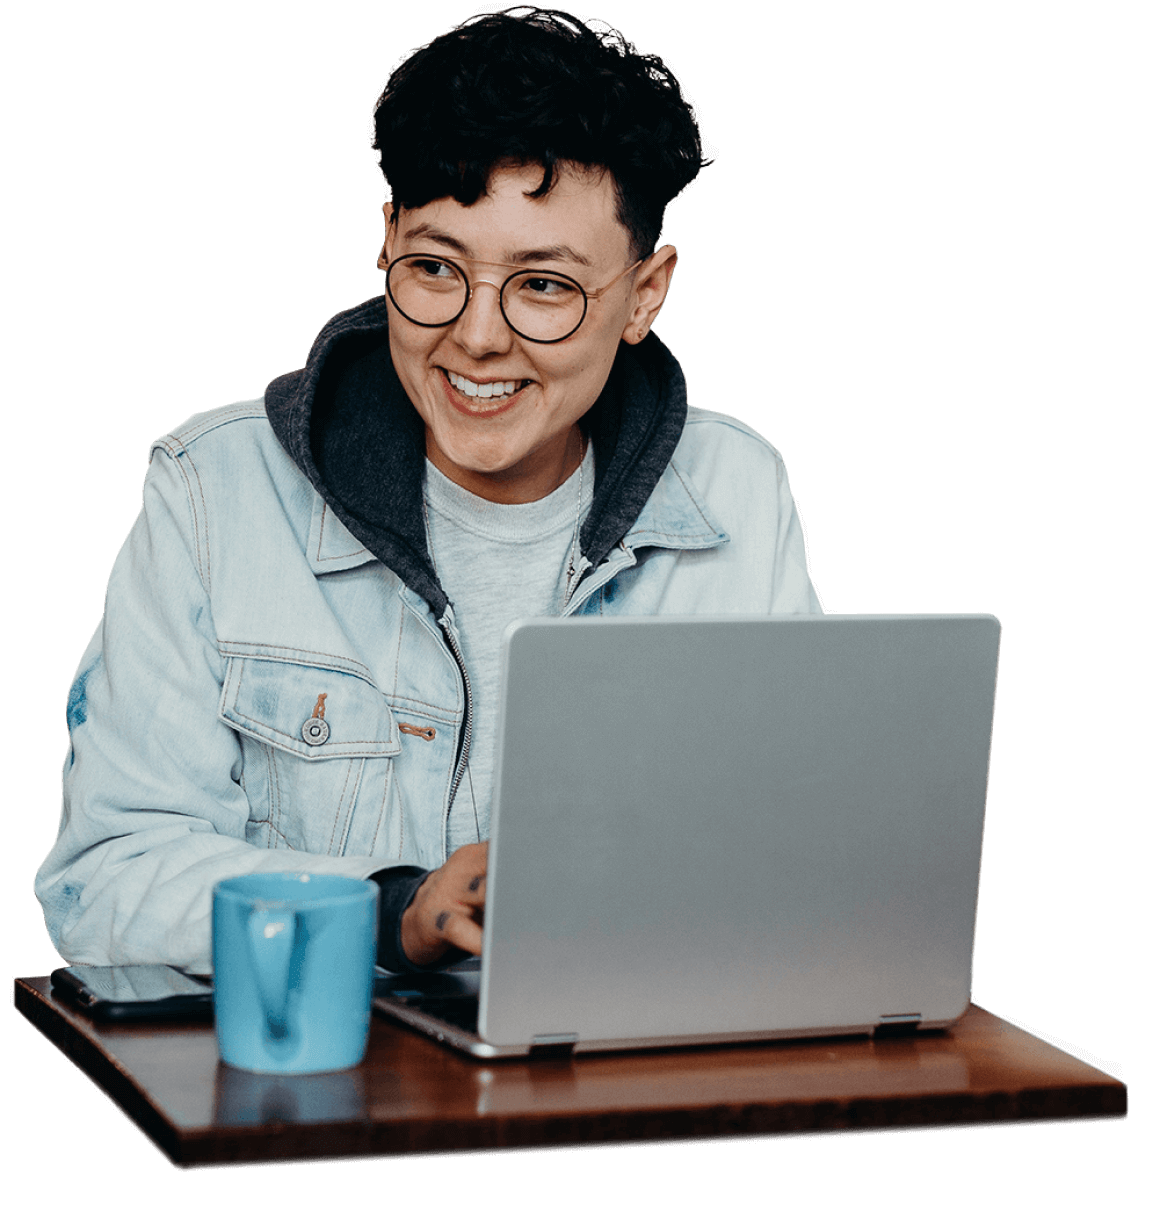 An engineering manager in a denim jacket looks up from their laptop with delight.